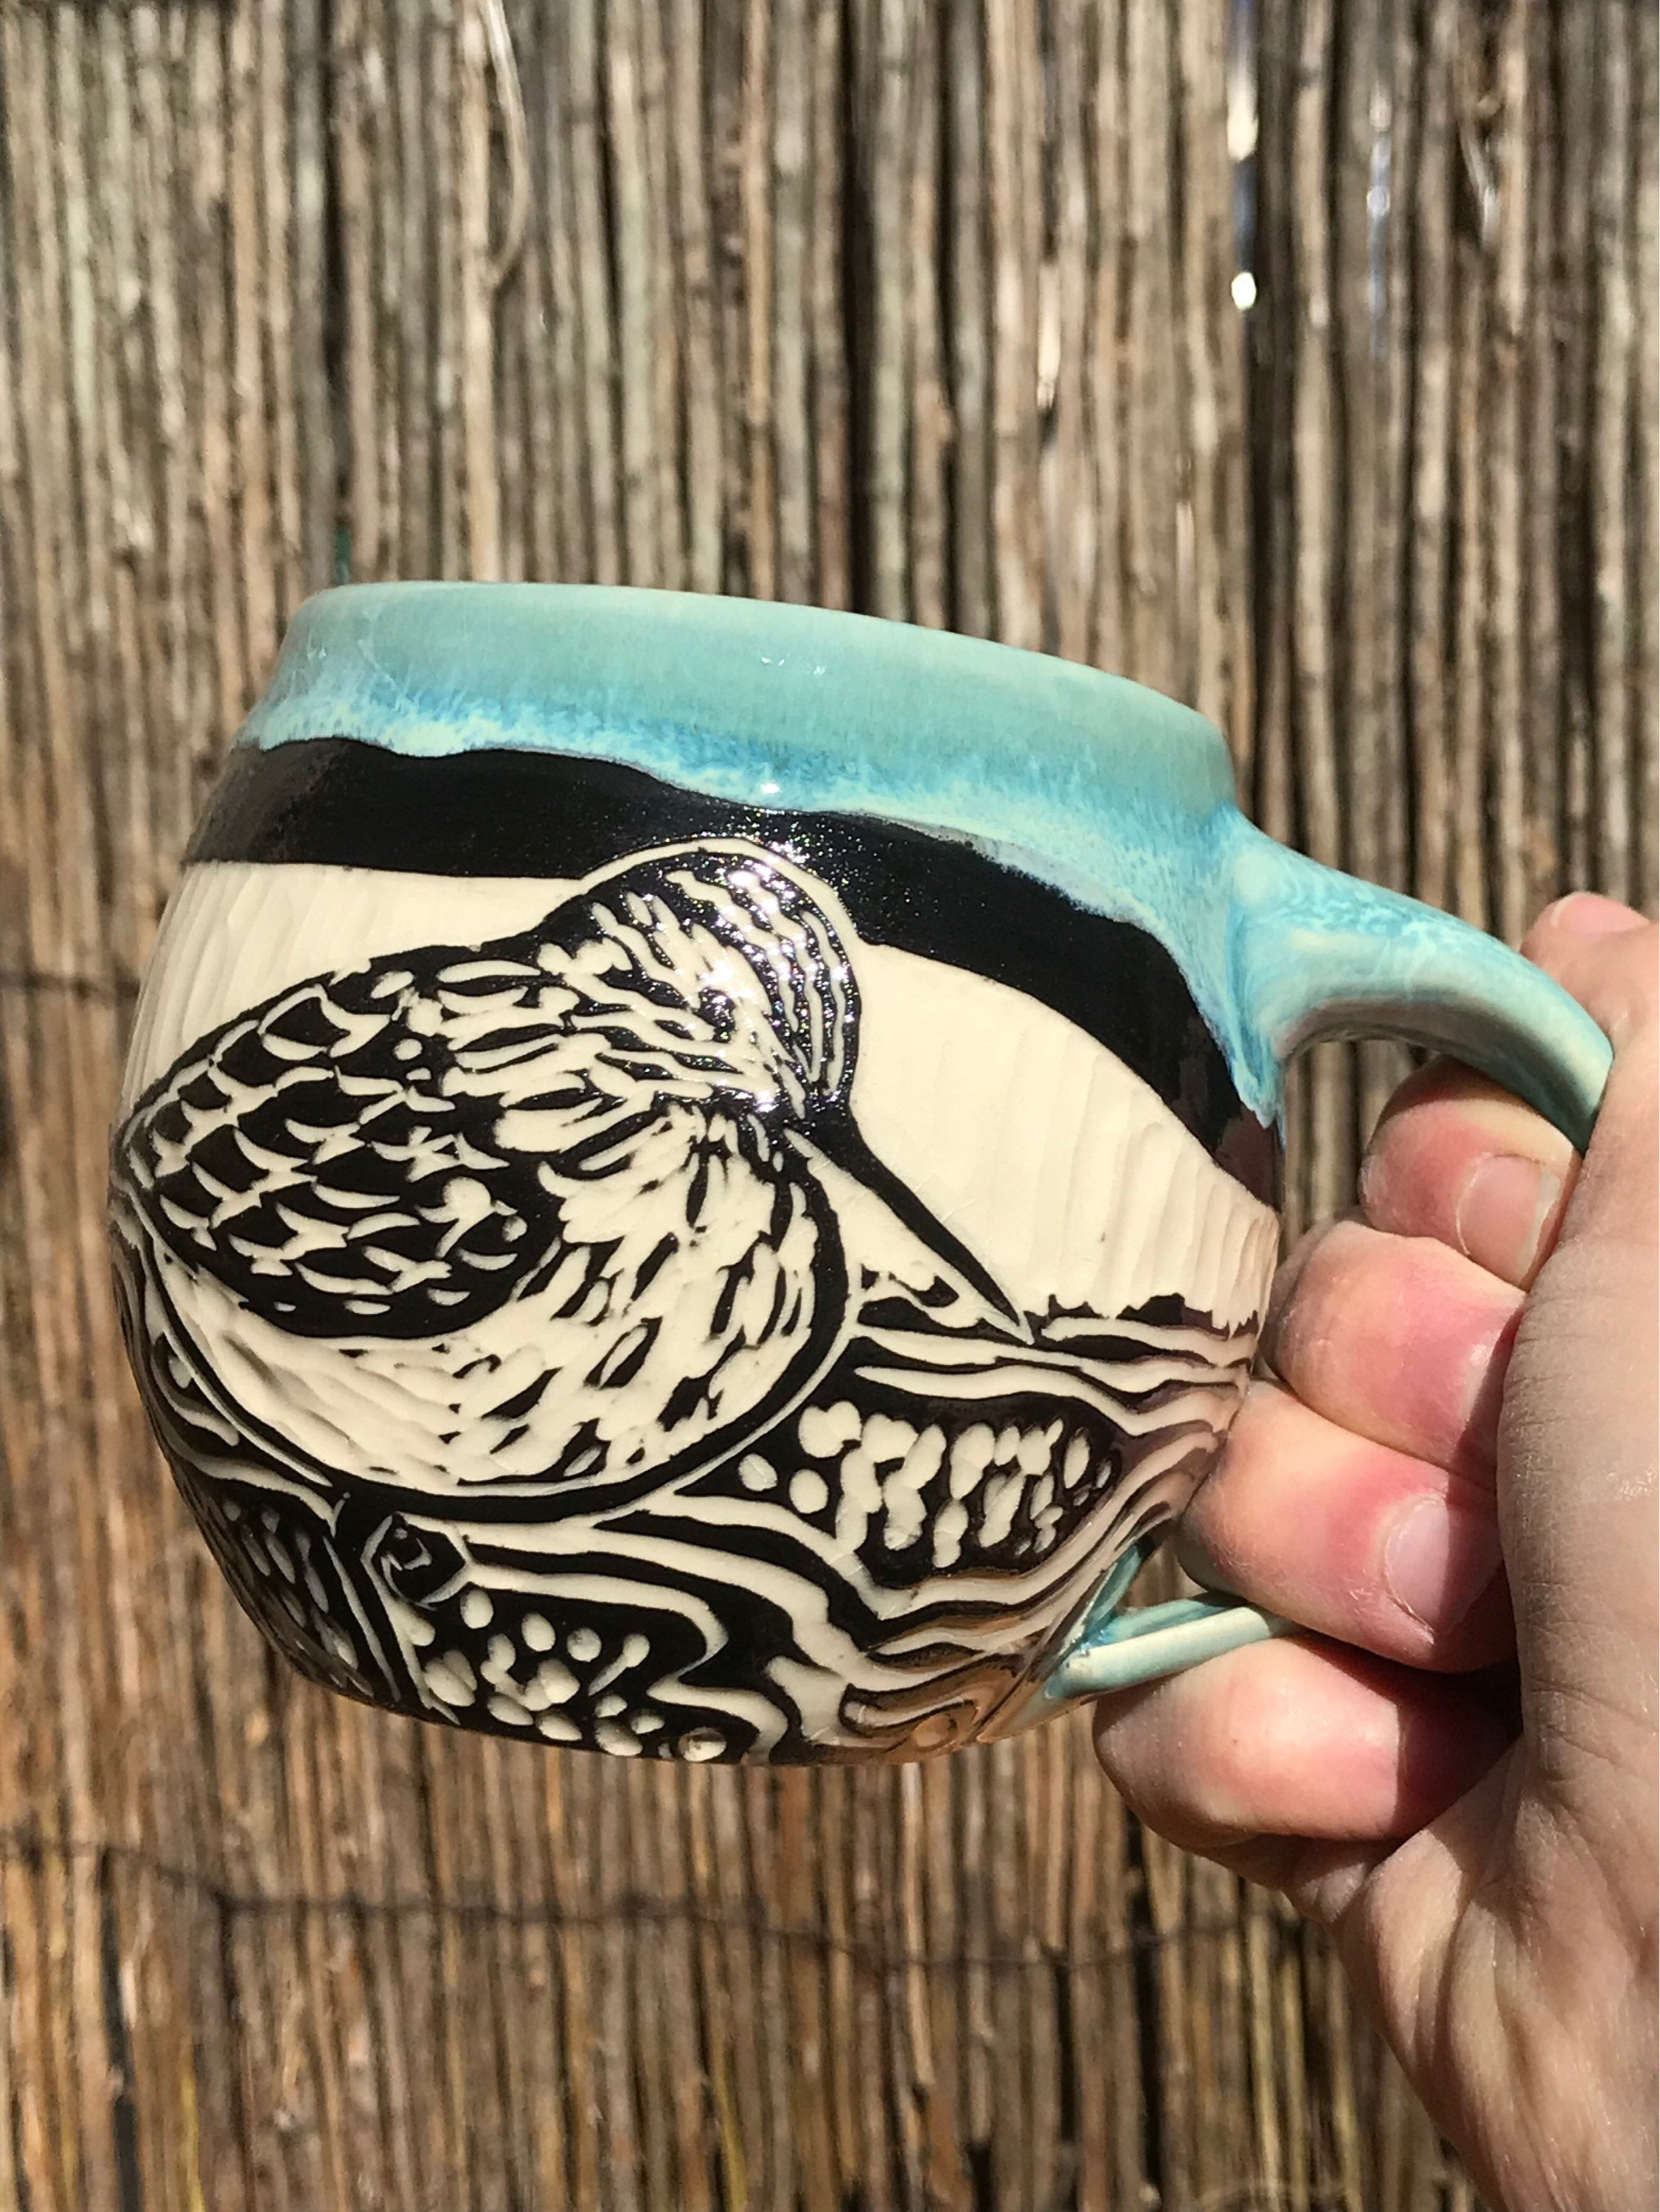 Blue sgraffito sandpiper ceramic coffee mug